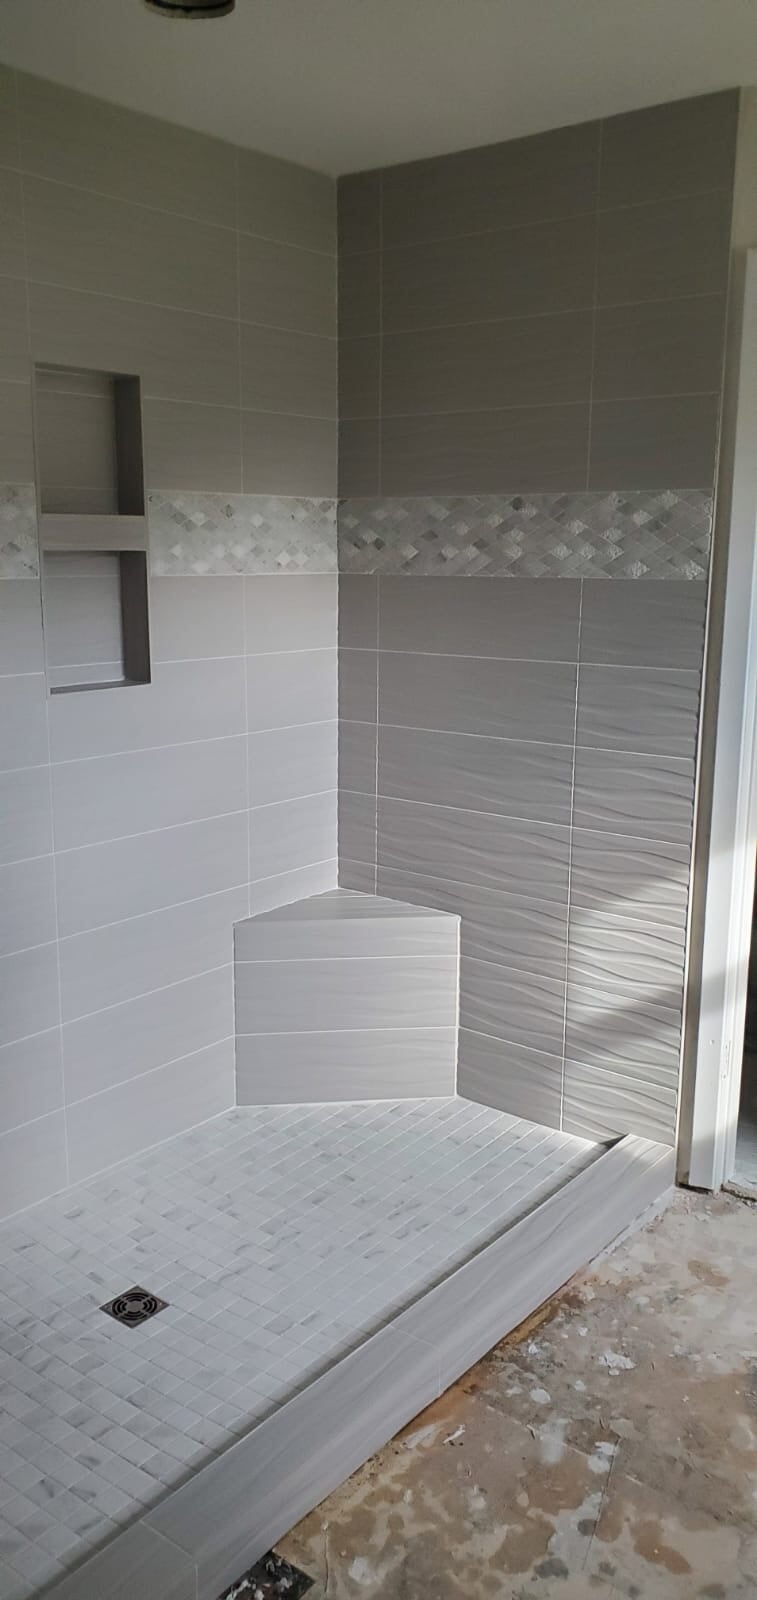 bathroom tile from Roop's Carpet in Cabot, AR